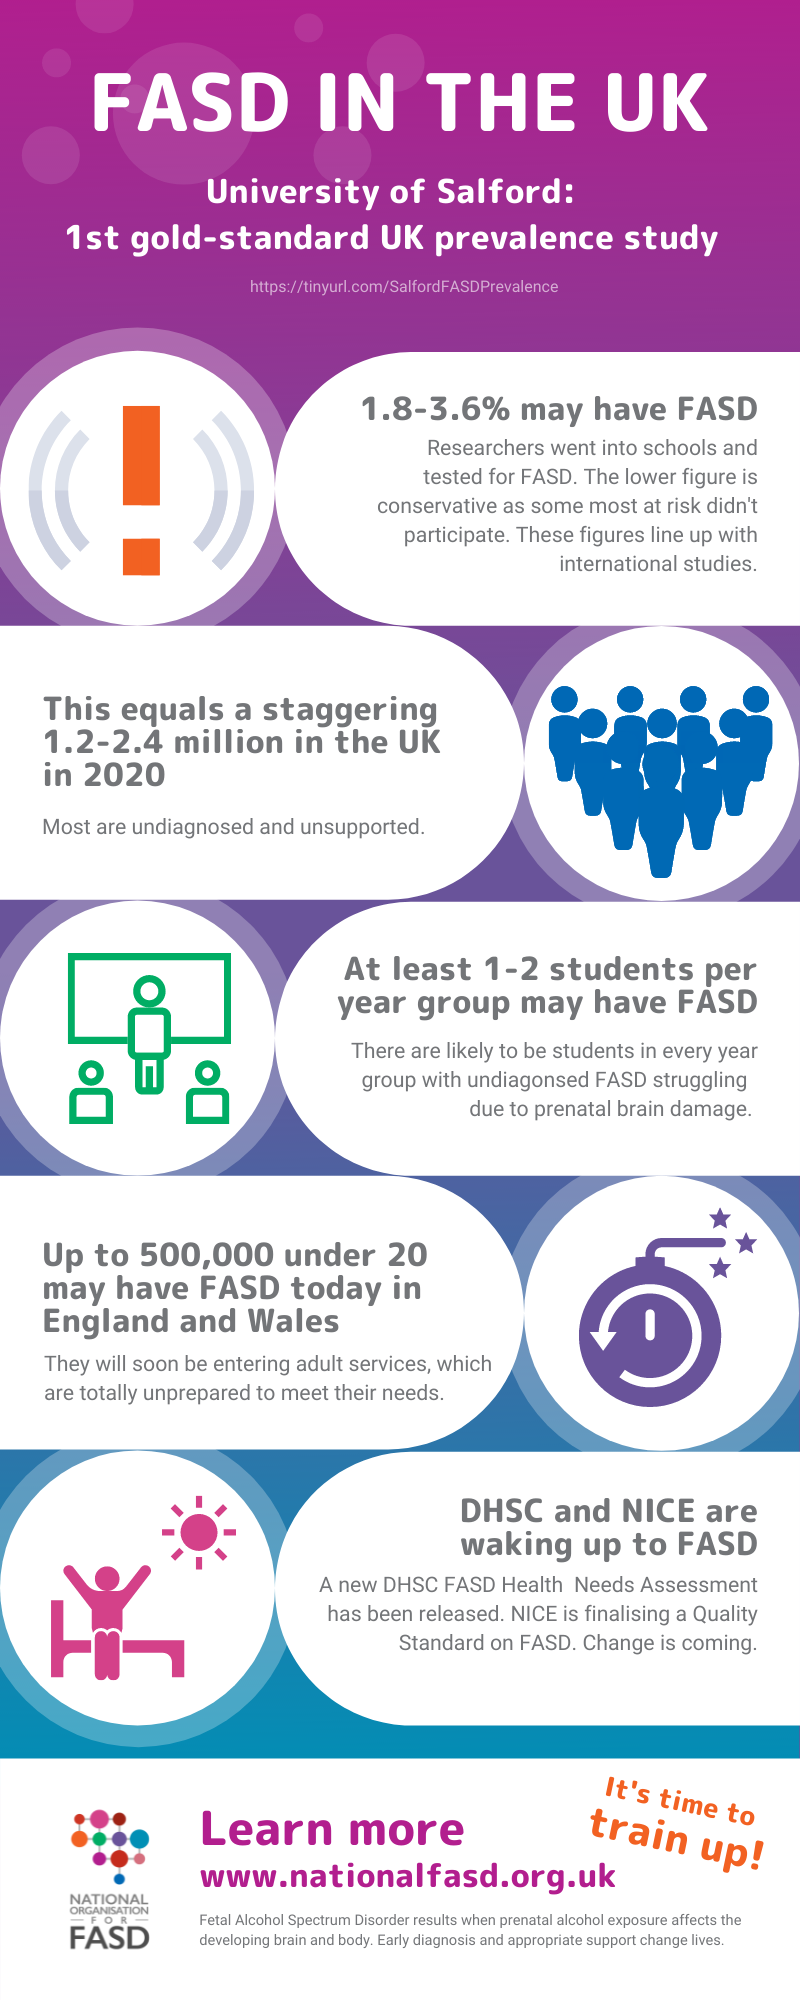 A colourful infographic with purples, green, blue and some orange - with text and icons based on statistics from the University of Salford, the 1st gold-standard UK FASD prevalence study https://tinyurl.com/SalfordFASDPrevalence/ Main stats: 1.8-3.6% may have FASD - Researchers went into schools and tested for FASD. The lower figure is conservative as some most at risk didn't participate. These figures line up with international studies. This equals 1.2-2.4 million in the UK in 2020-There are likely to be students in every year group with undiagonsed FASD struggling due to prenatal brain damage; At least 1-2 students per year group may have FASD - Most are undiagnosed and unsupported; Up to 500,000 under 20 may have FASD today in England and Wales, They will soon be entering adult services, which are totally unprepared to meet their needs.; A new DHSC FASD Health Needs Assessment has been released. A NICE Quality Standard is on its way. www.nationalfasd.org.uk